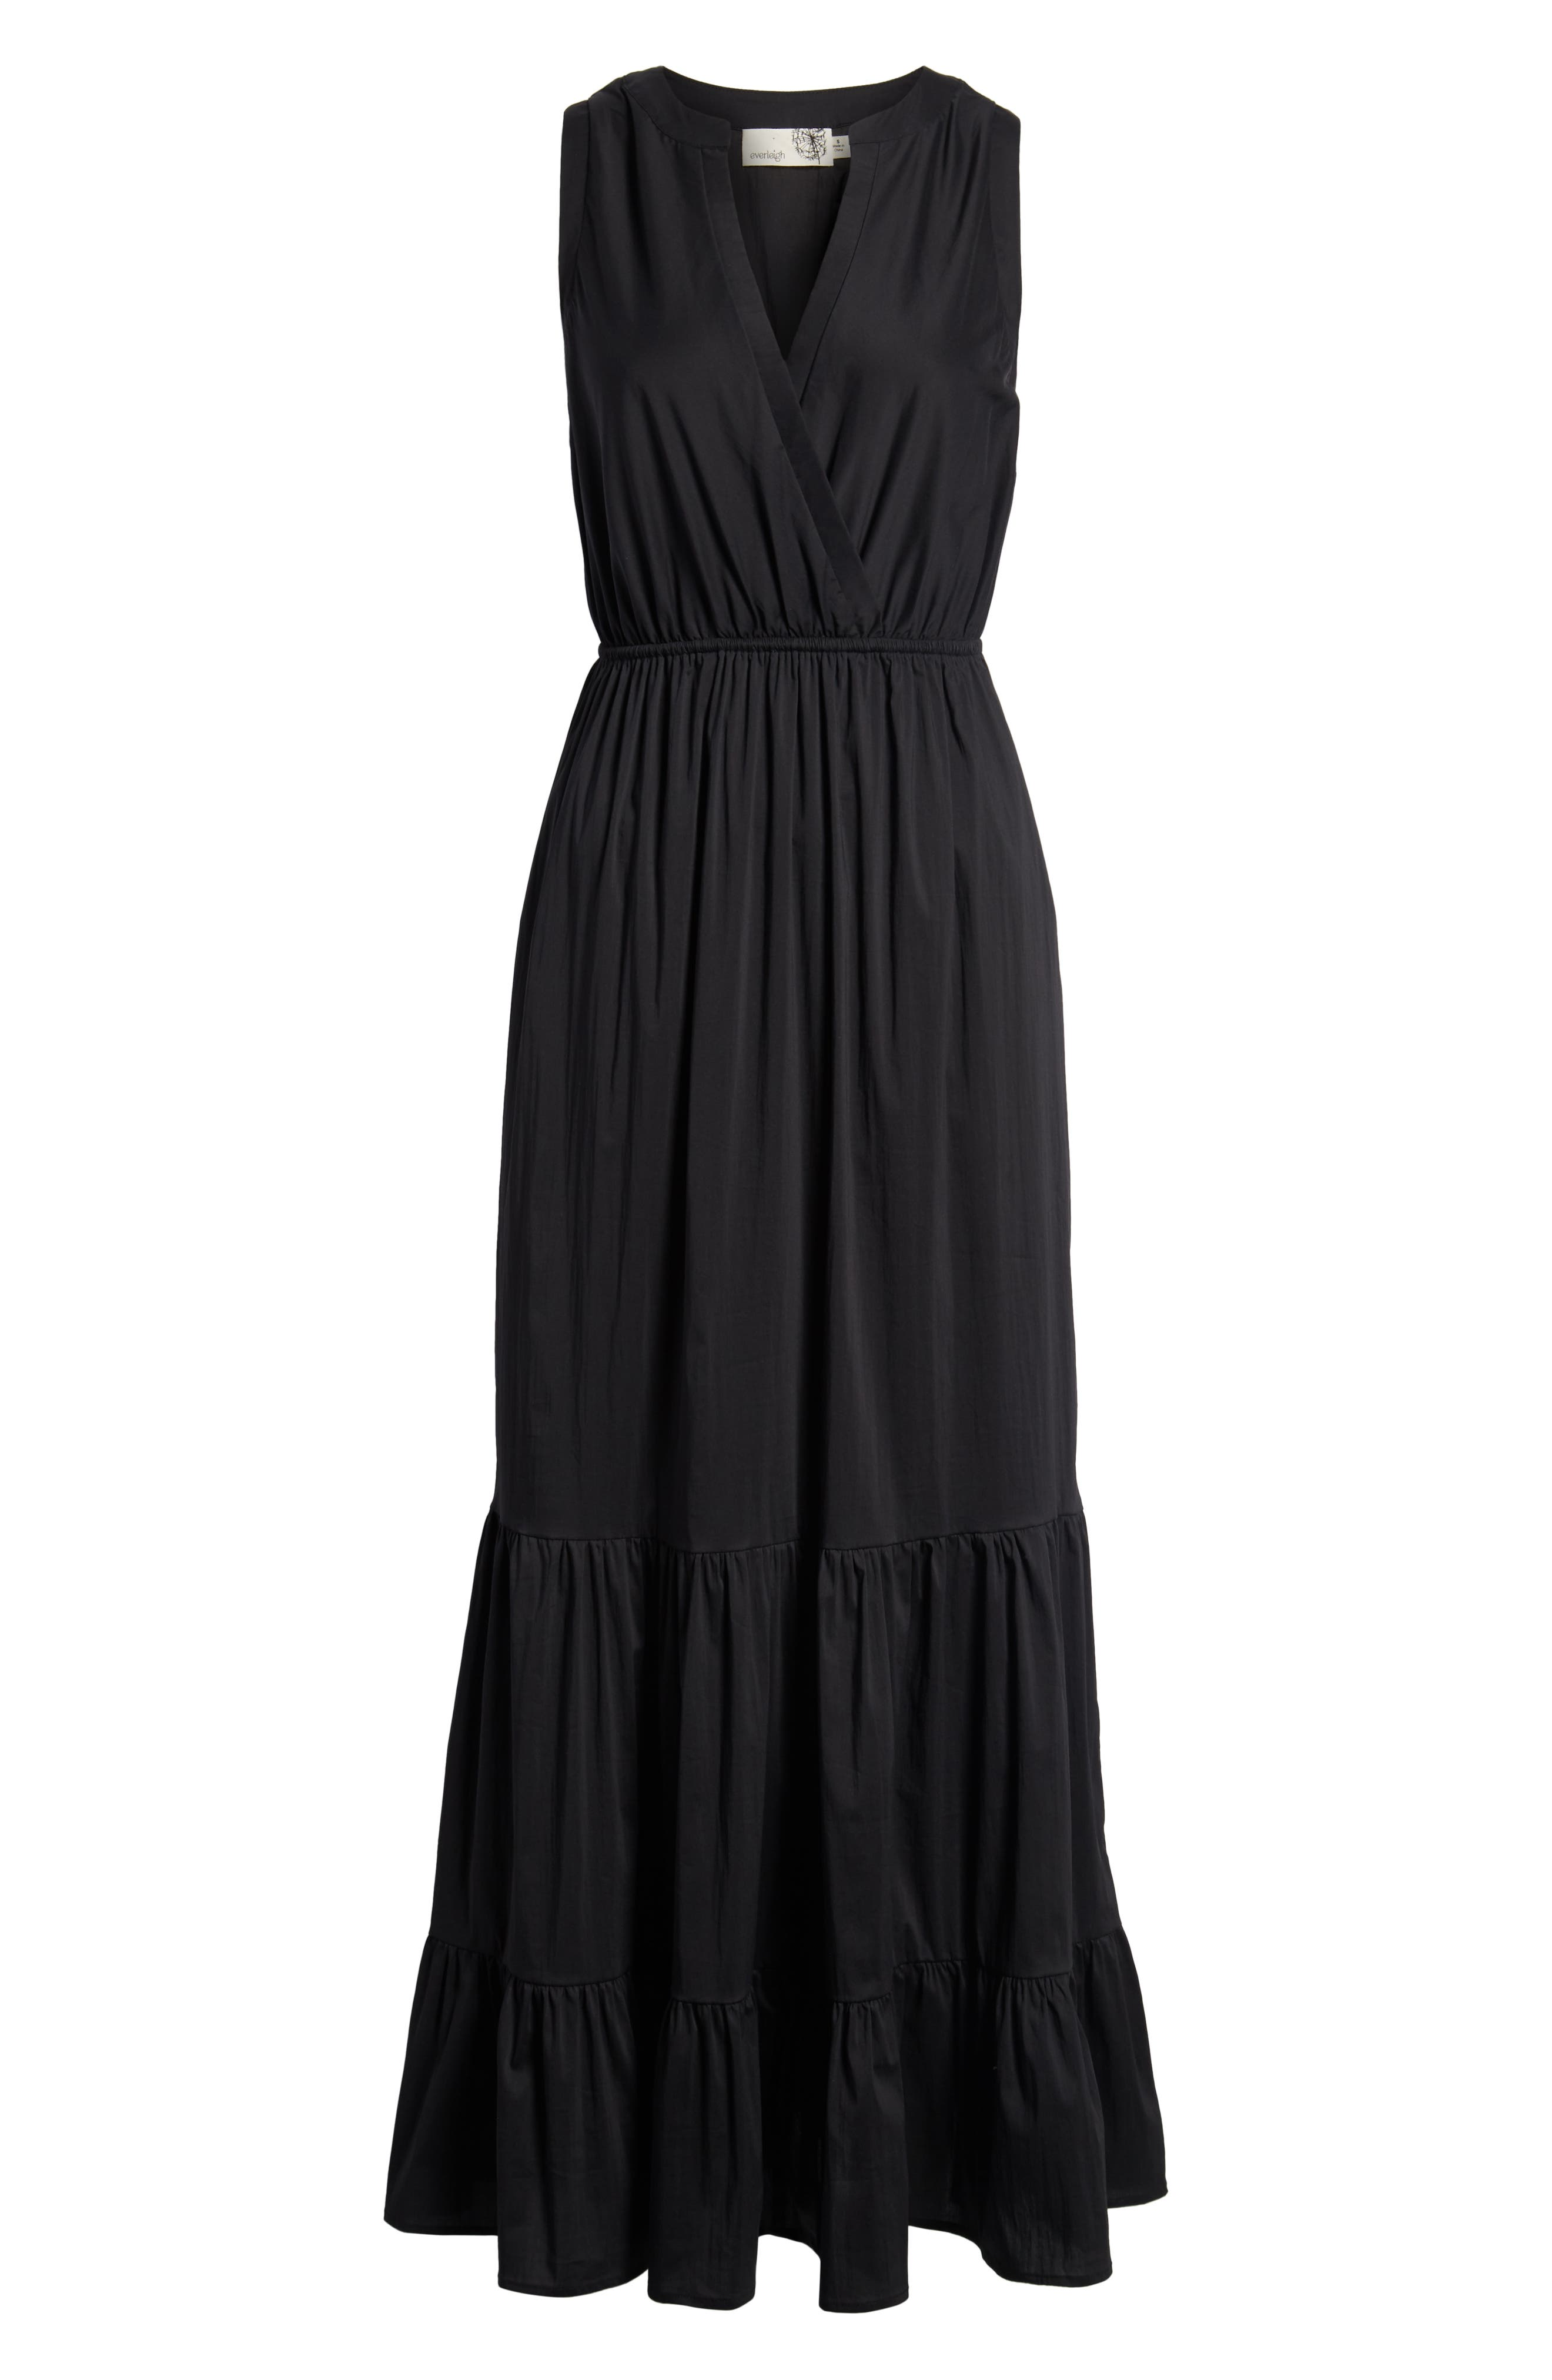 Tiered Maxi Dress,                             Alternate thumbnail 7, color,                             001